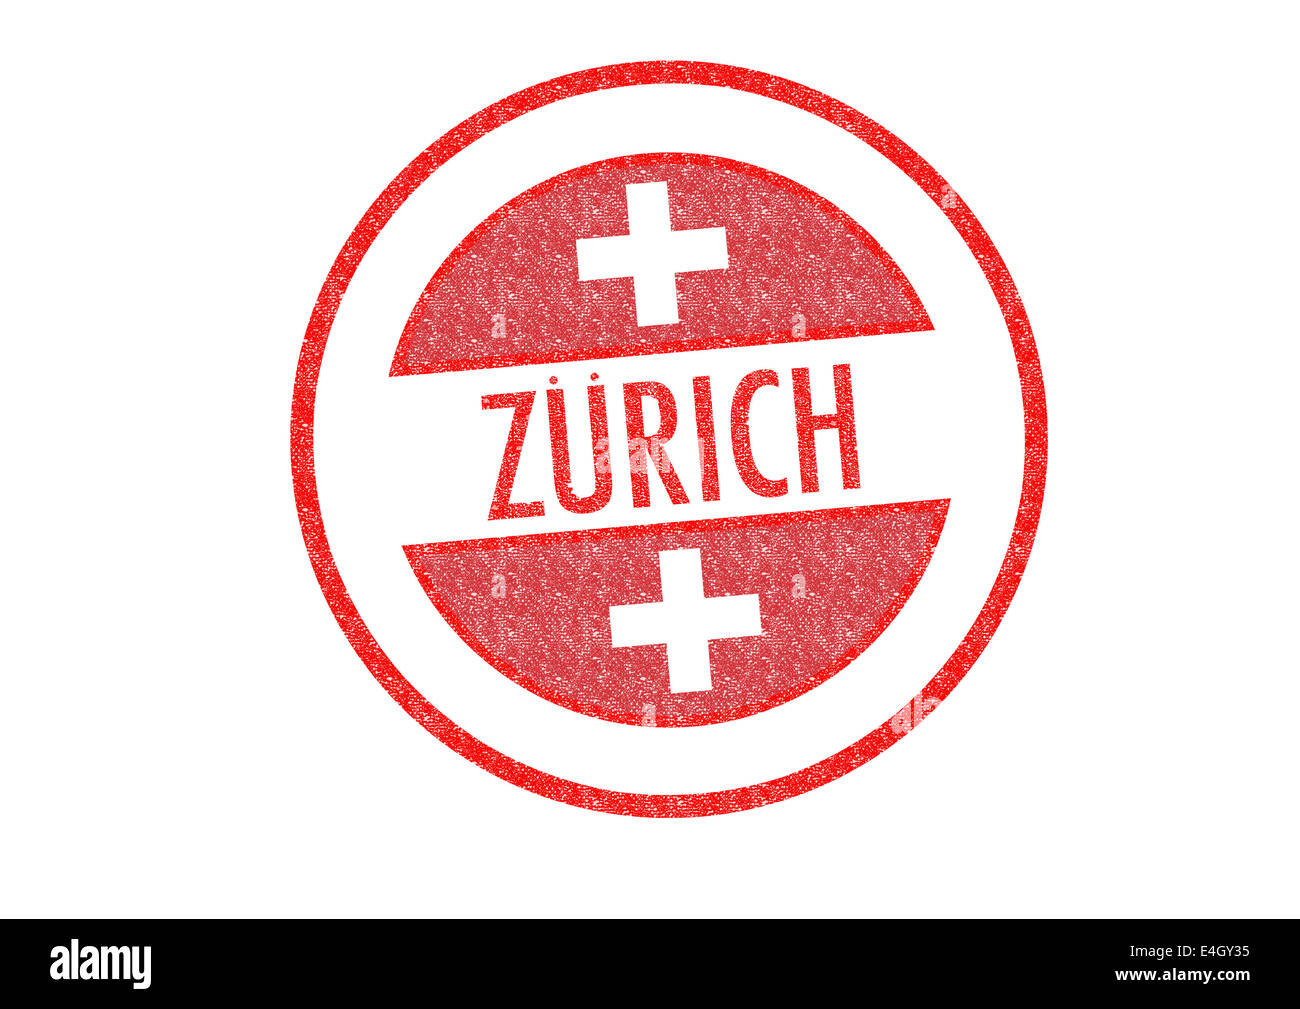 Passport-style ZURICH rubber stamp over a white background. - Stock Image